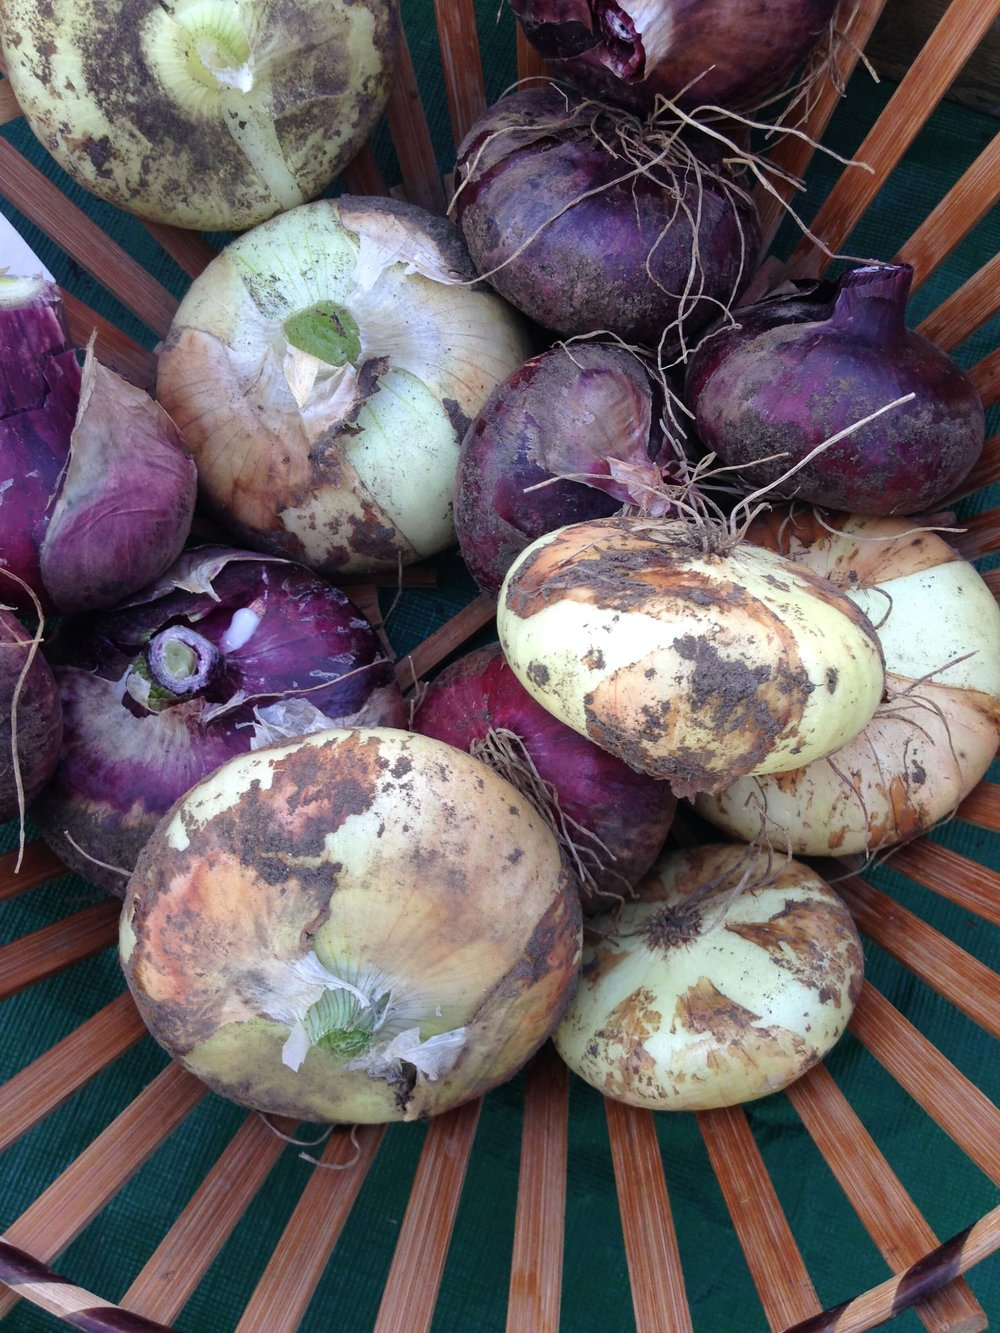 purple and white onions in a basket